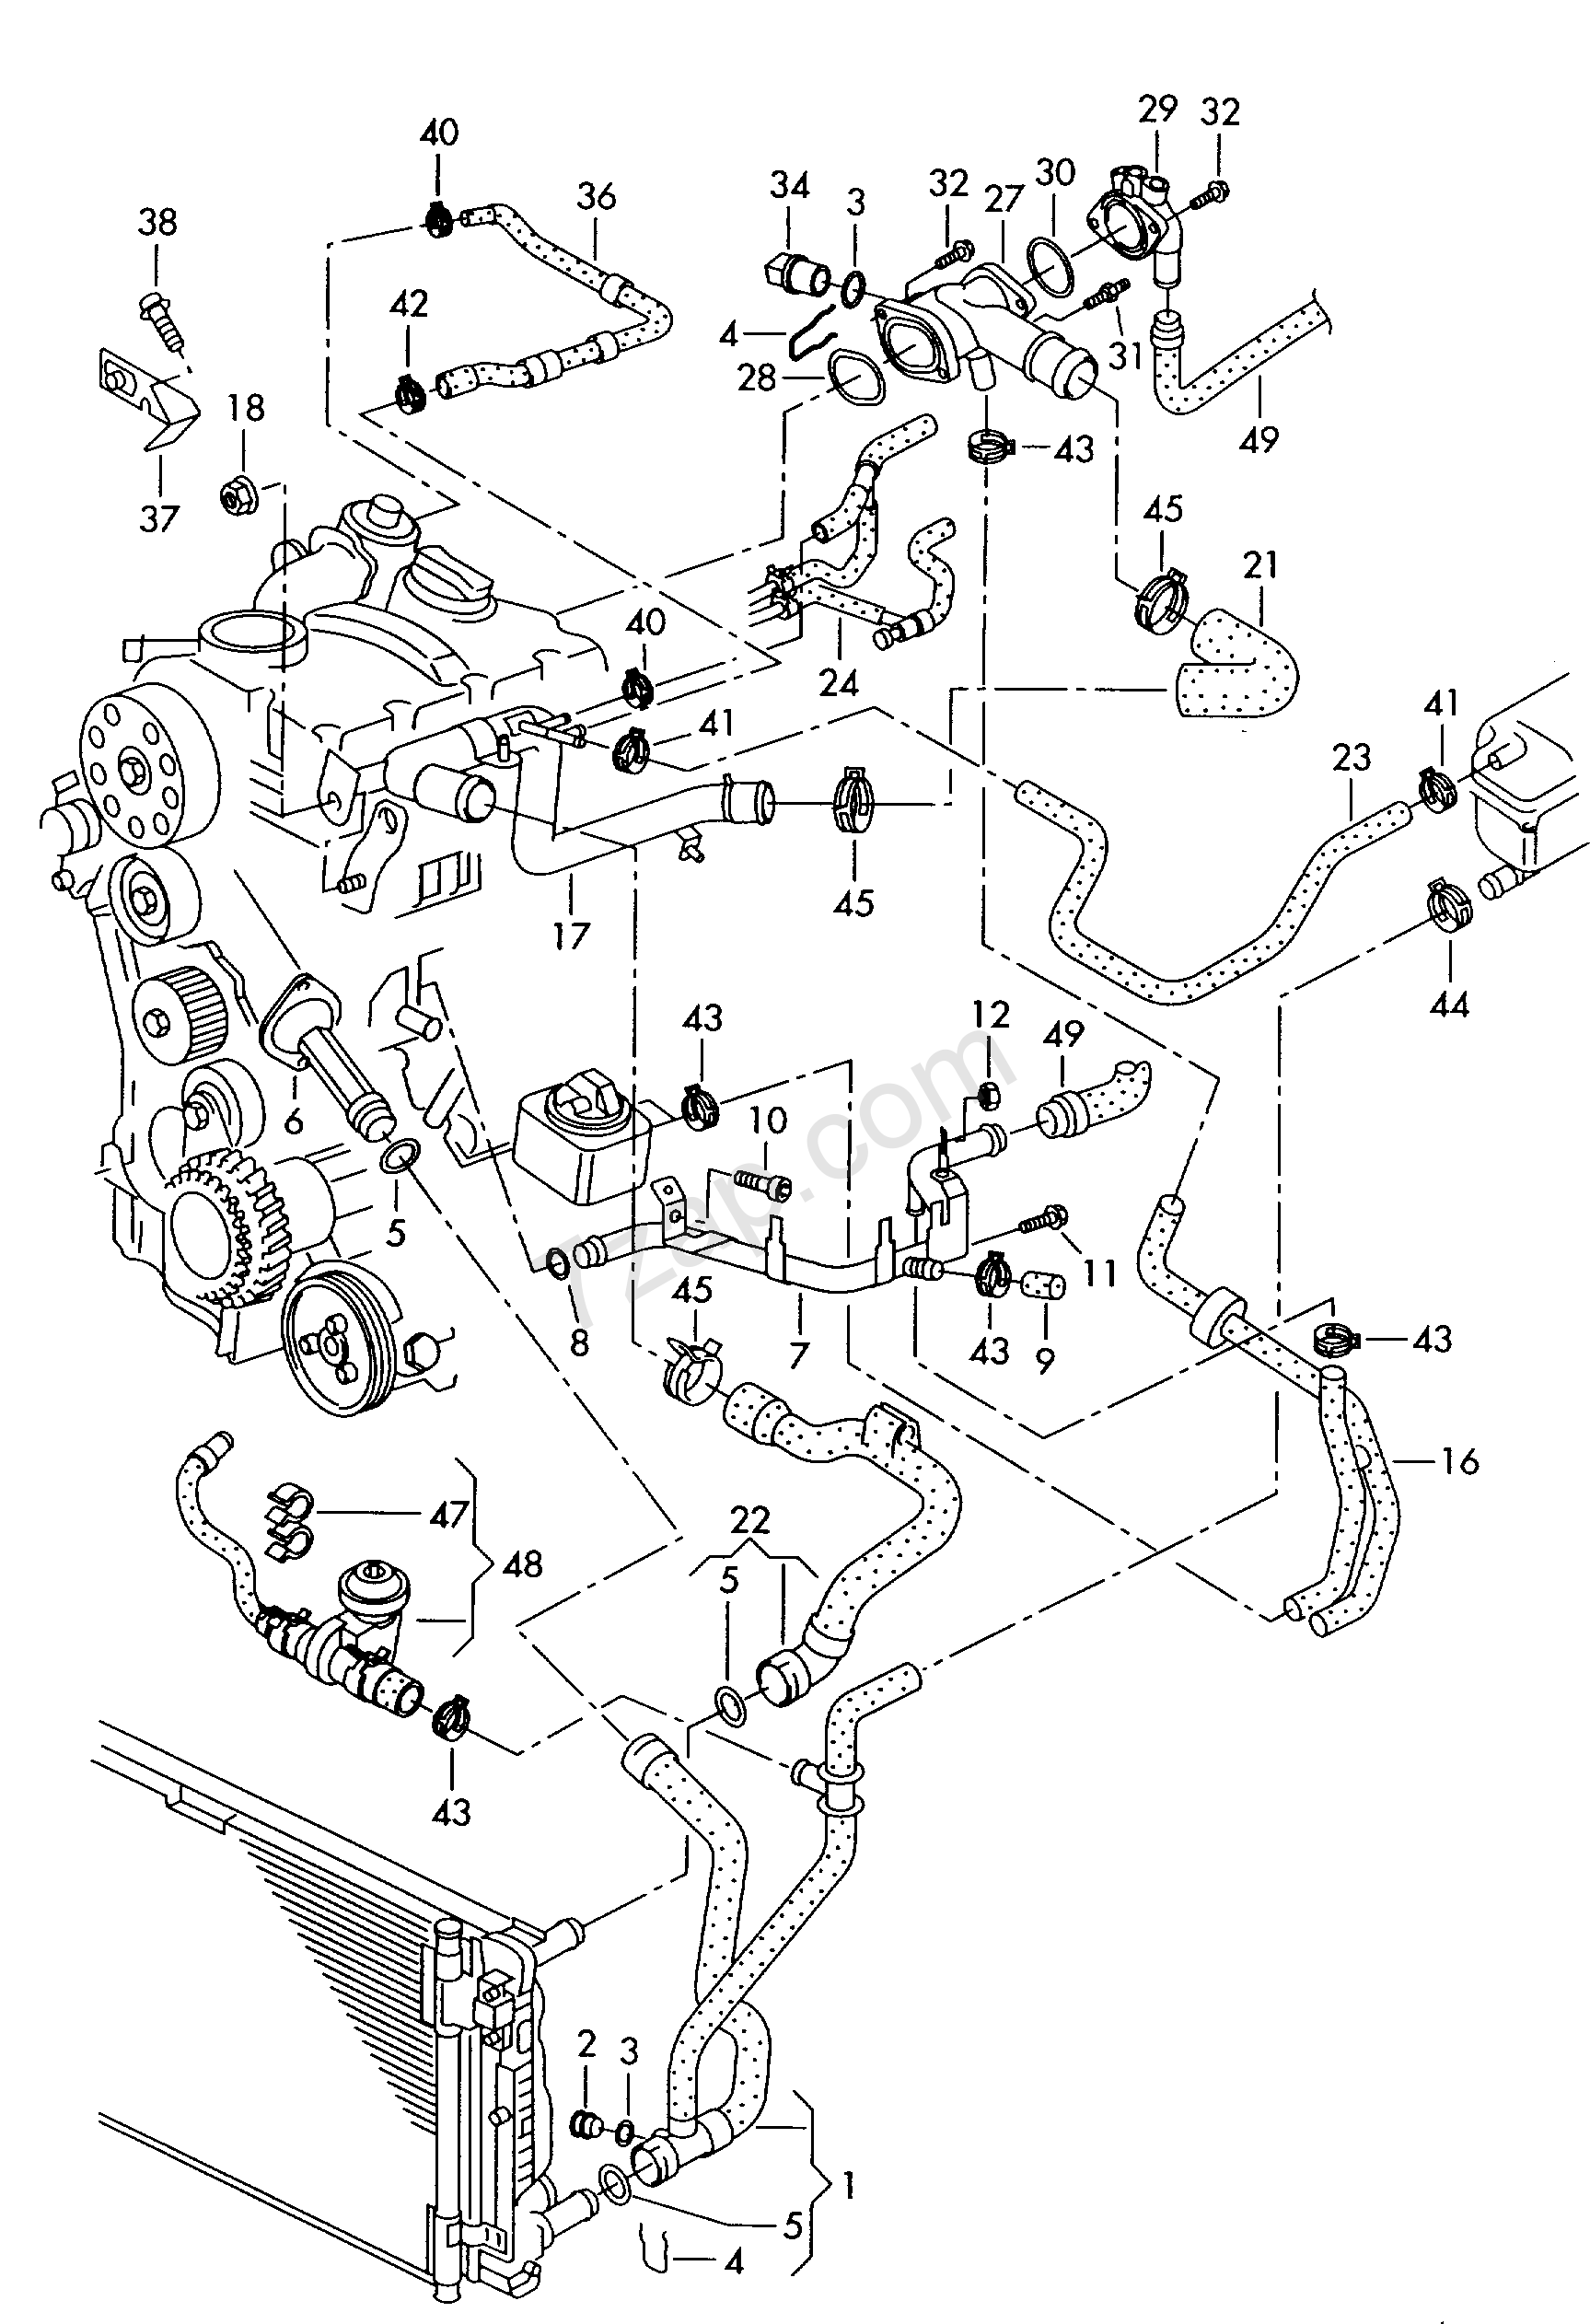 coolant cooling system - audi a4/s4/avant/quattro(a4q) [europa 2001 year]